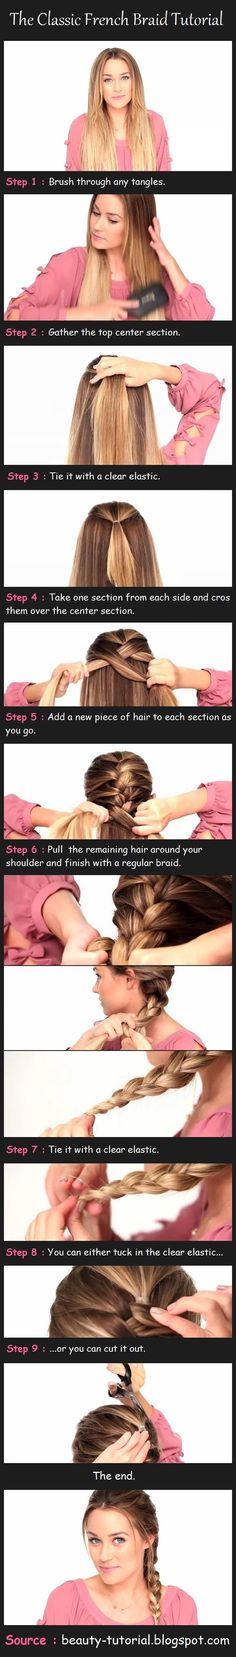 french braid your own hair.